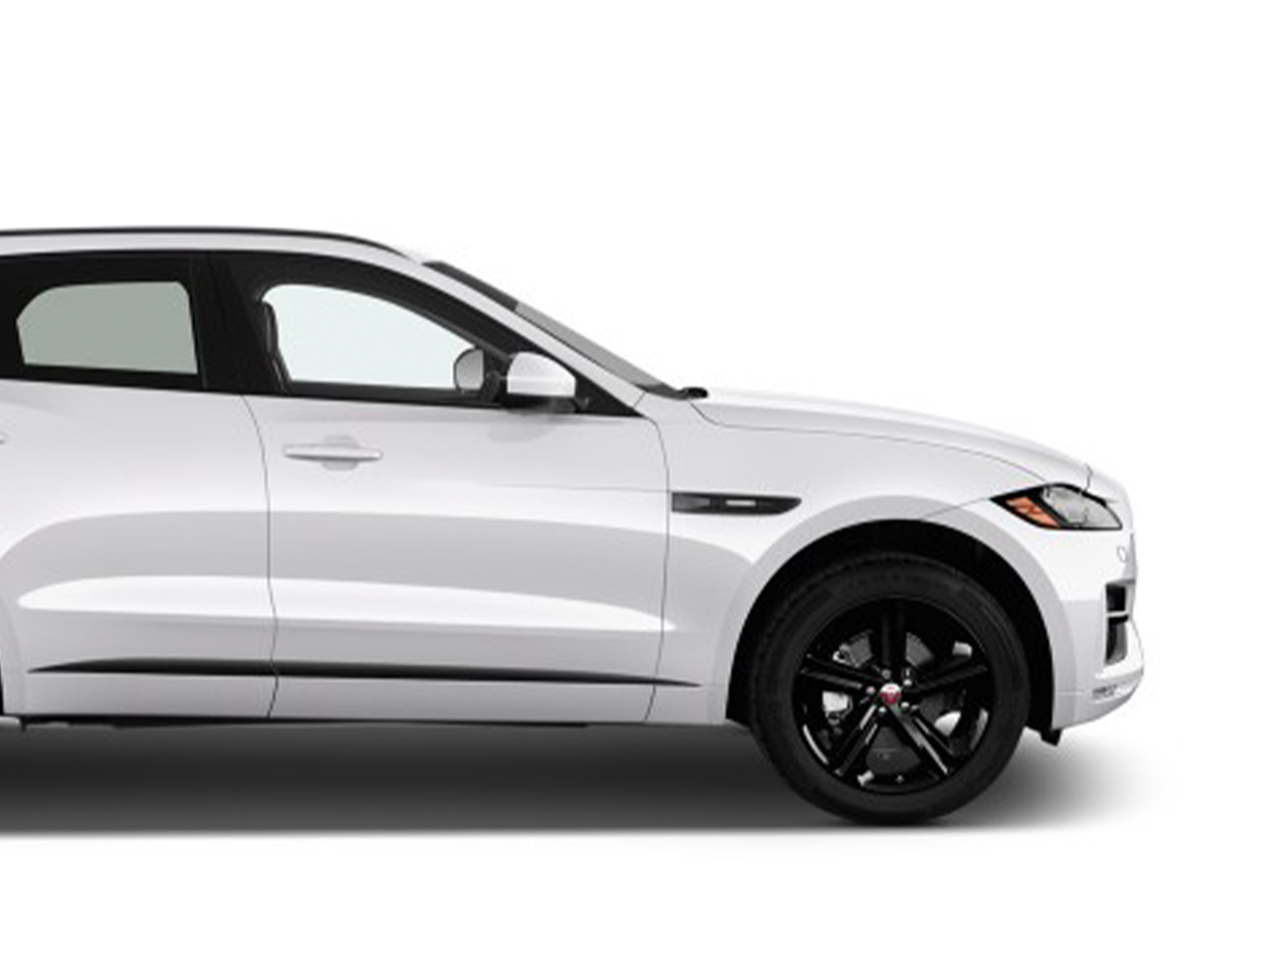 Jaguar F-Pace S car for hire